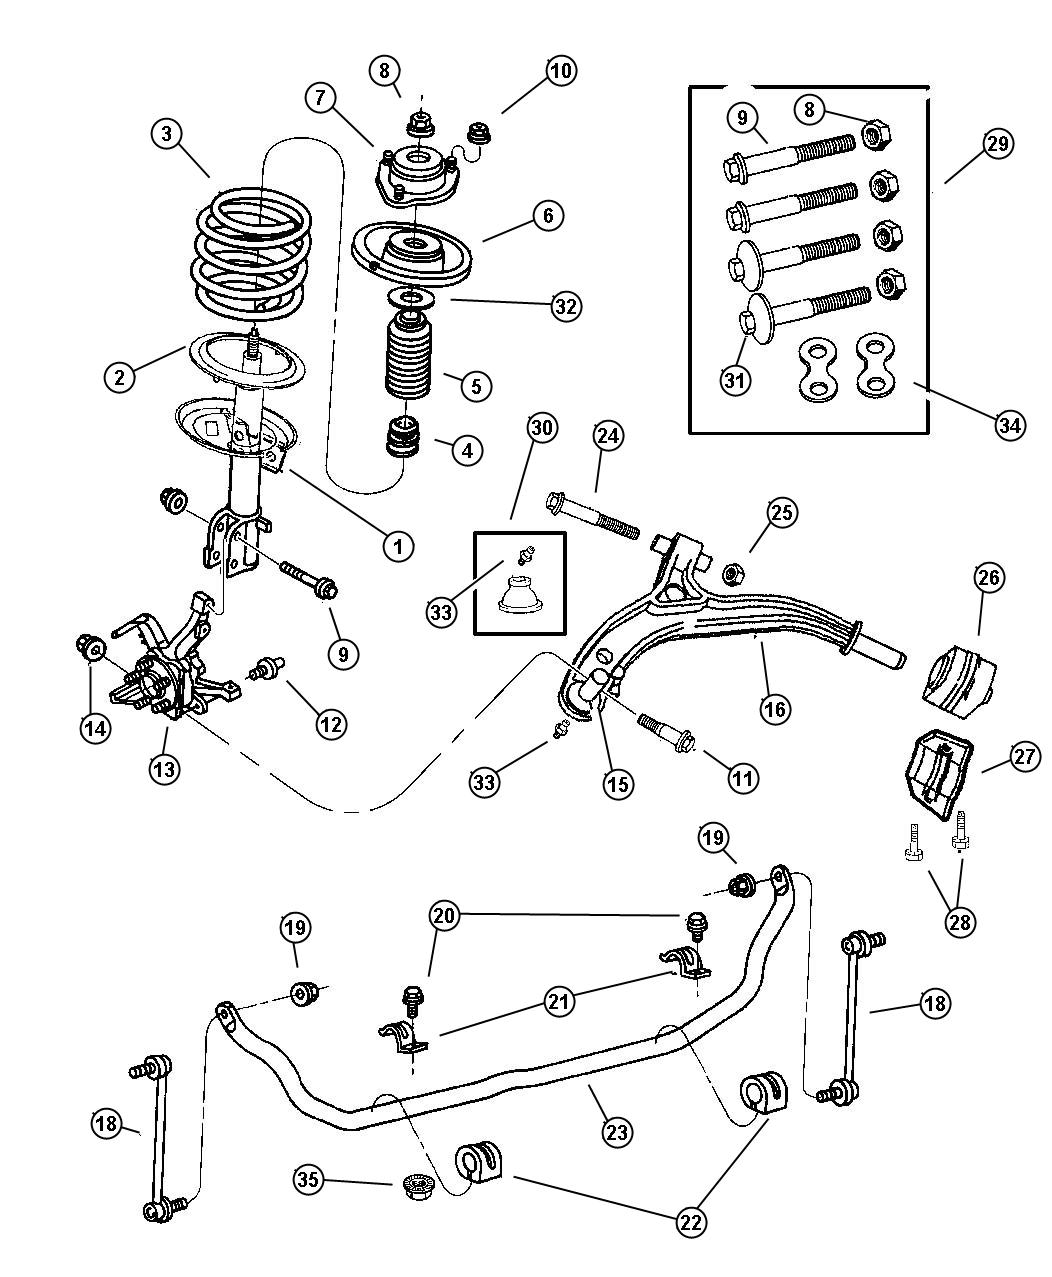 200 Dodge Caravan Fuse Box Diagram Wiring Diagram Effective A Effective A Bowlingronta It